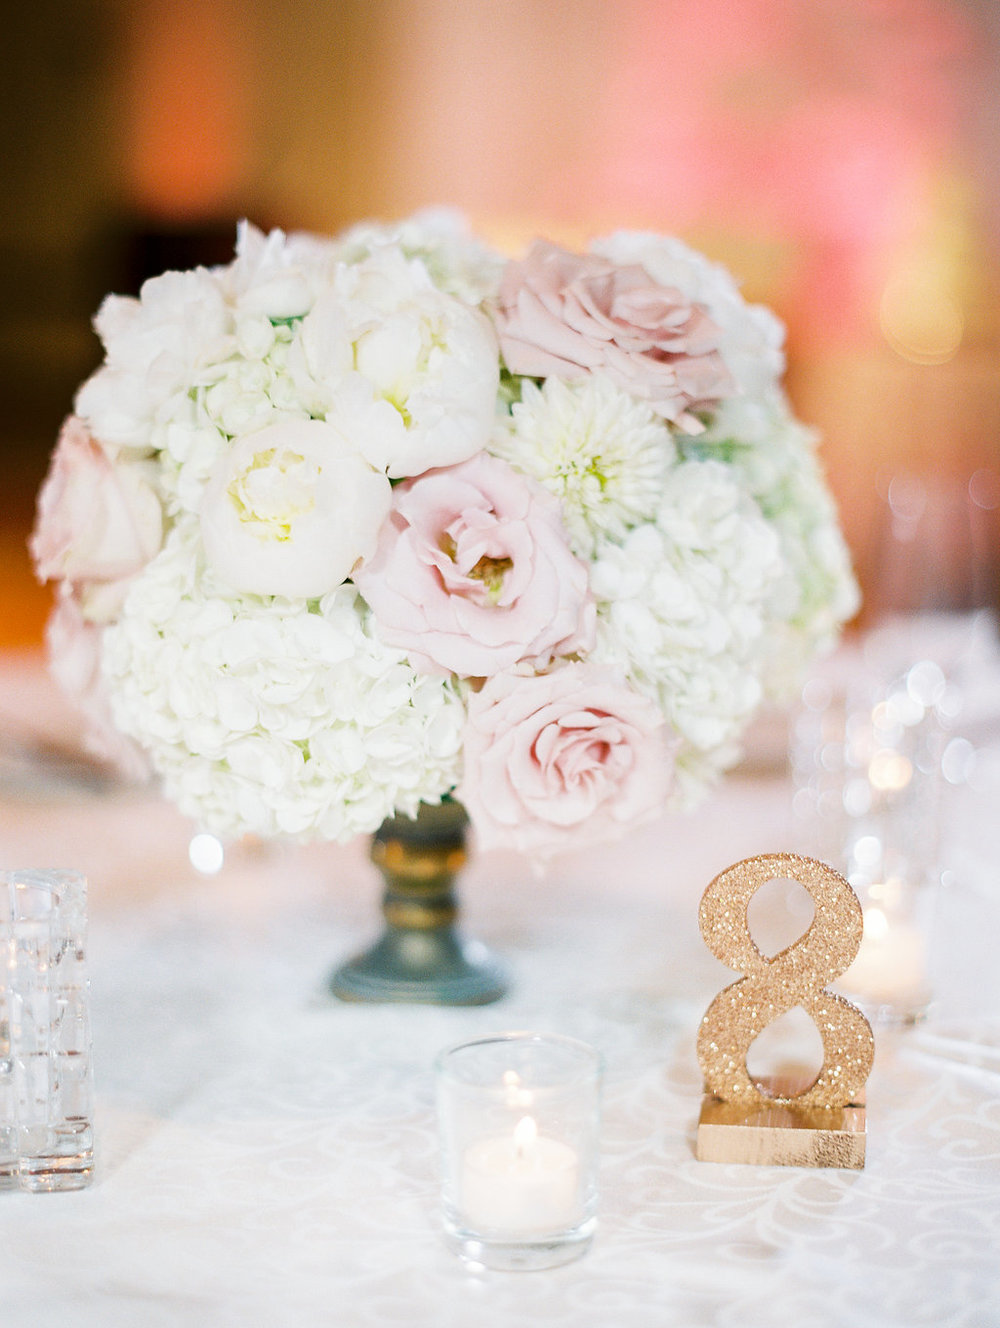 Centerpiece | Florals by Passion Roots | Ashley Goodwin Photography